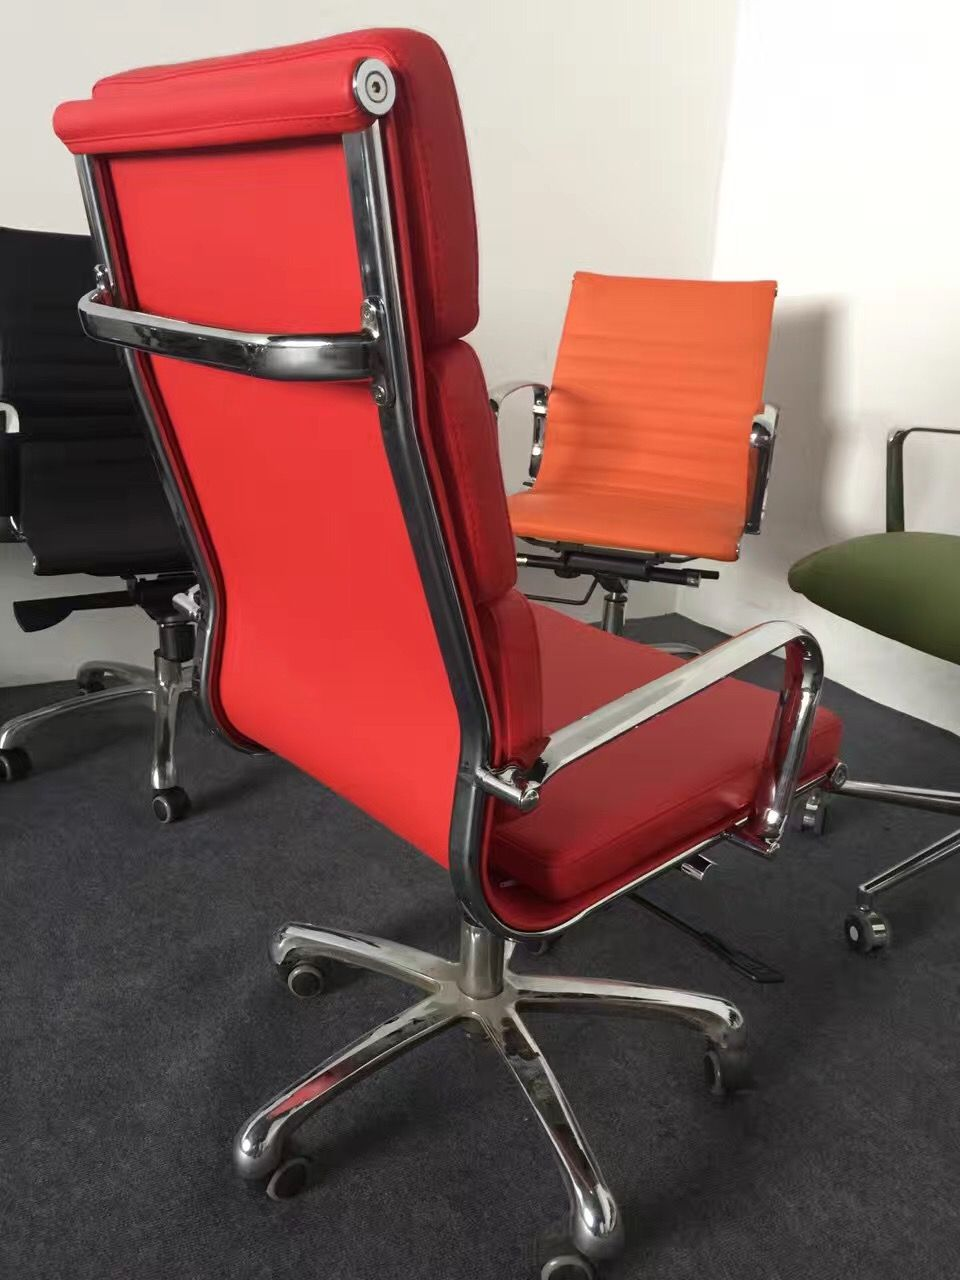 Modern Red Eames Office Chair Reclining Red Office Chair Ergonomic Red Eames Mesh Chair Eames Office Chair Mesh Chair Office Chair